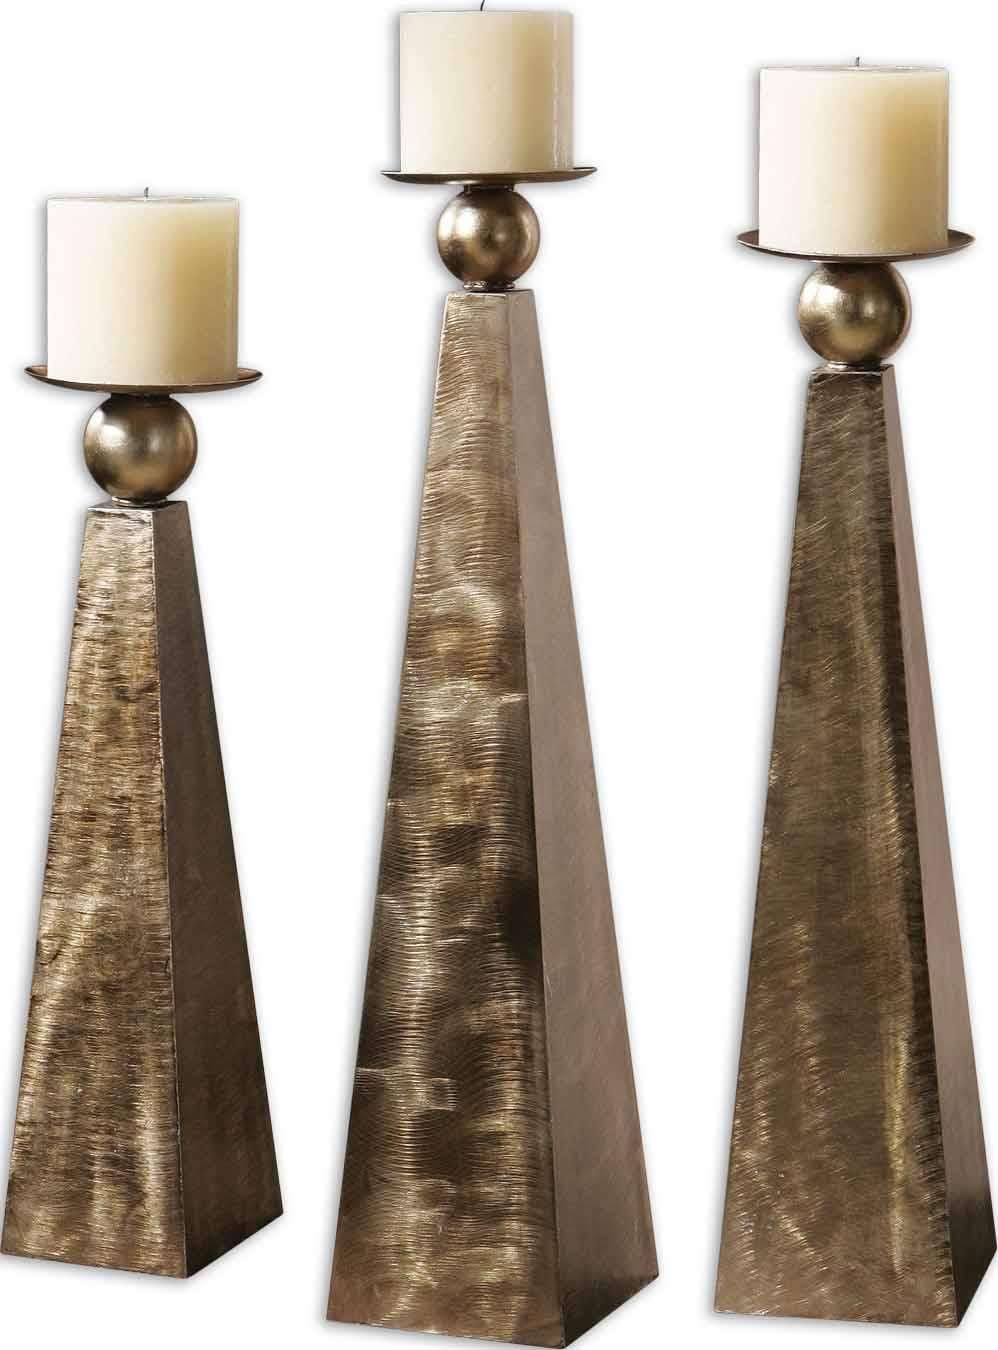 Uttermost Accessories Cesano Set of 3 - Item Number: 19652